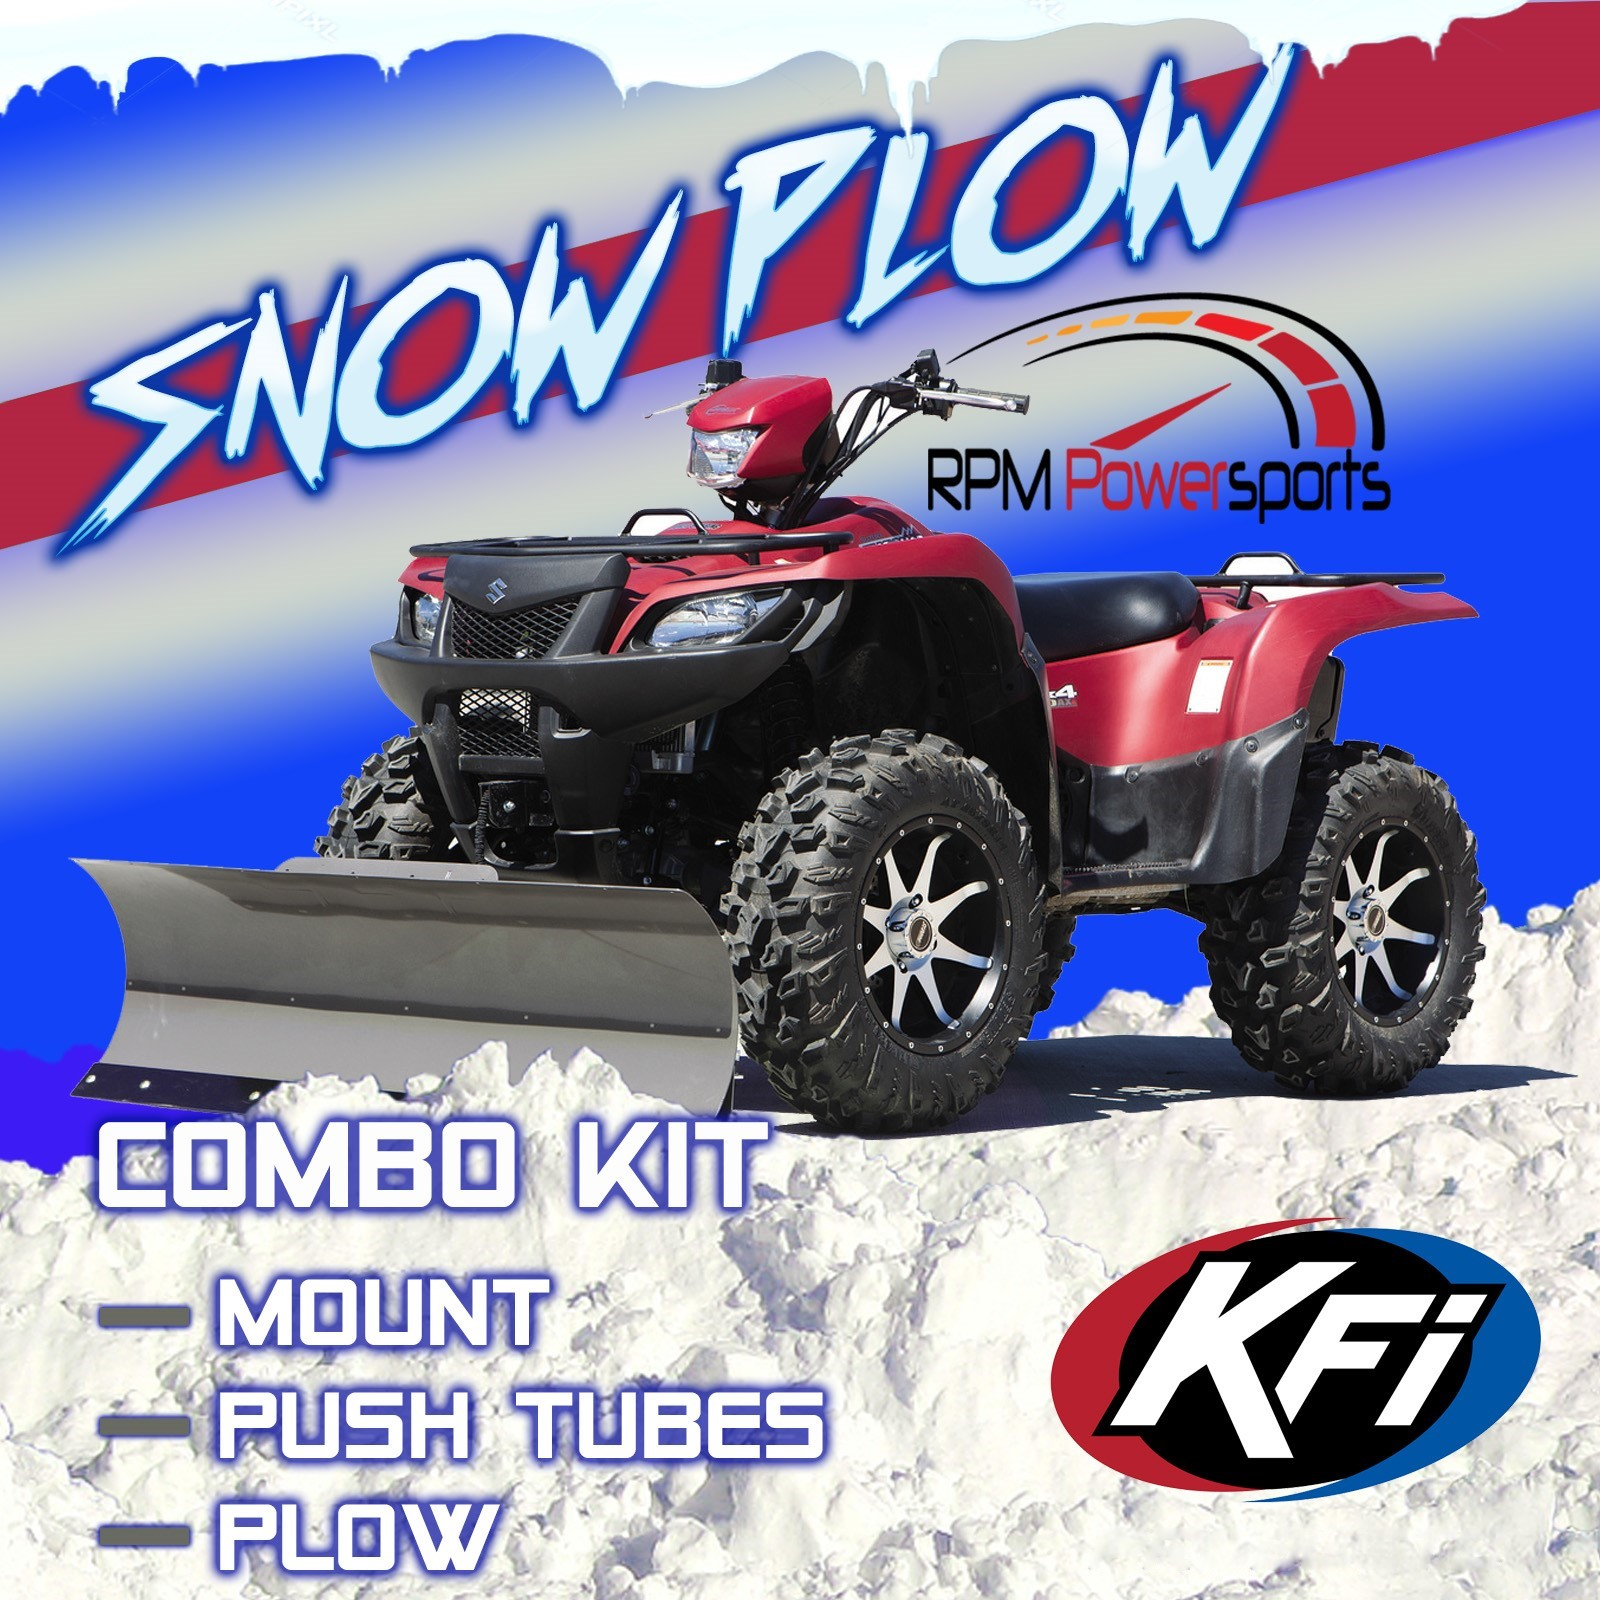 hight resolution of details about kfi atv 54 snow plow kit combo yamaha grizzly 660 700 2002 2018